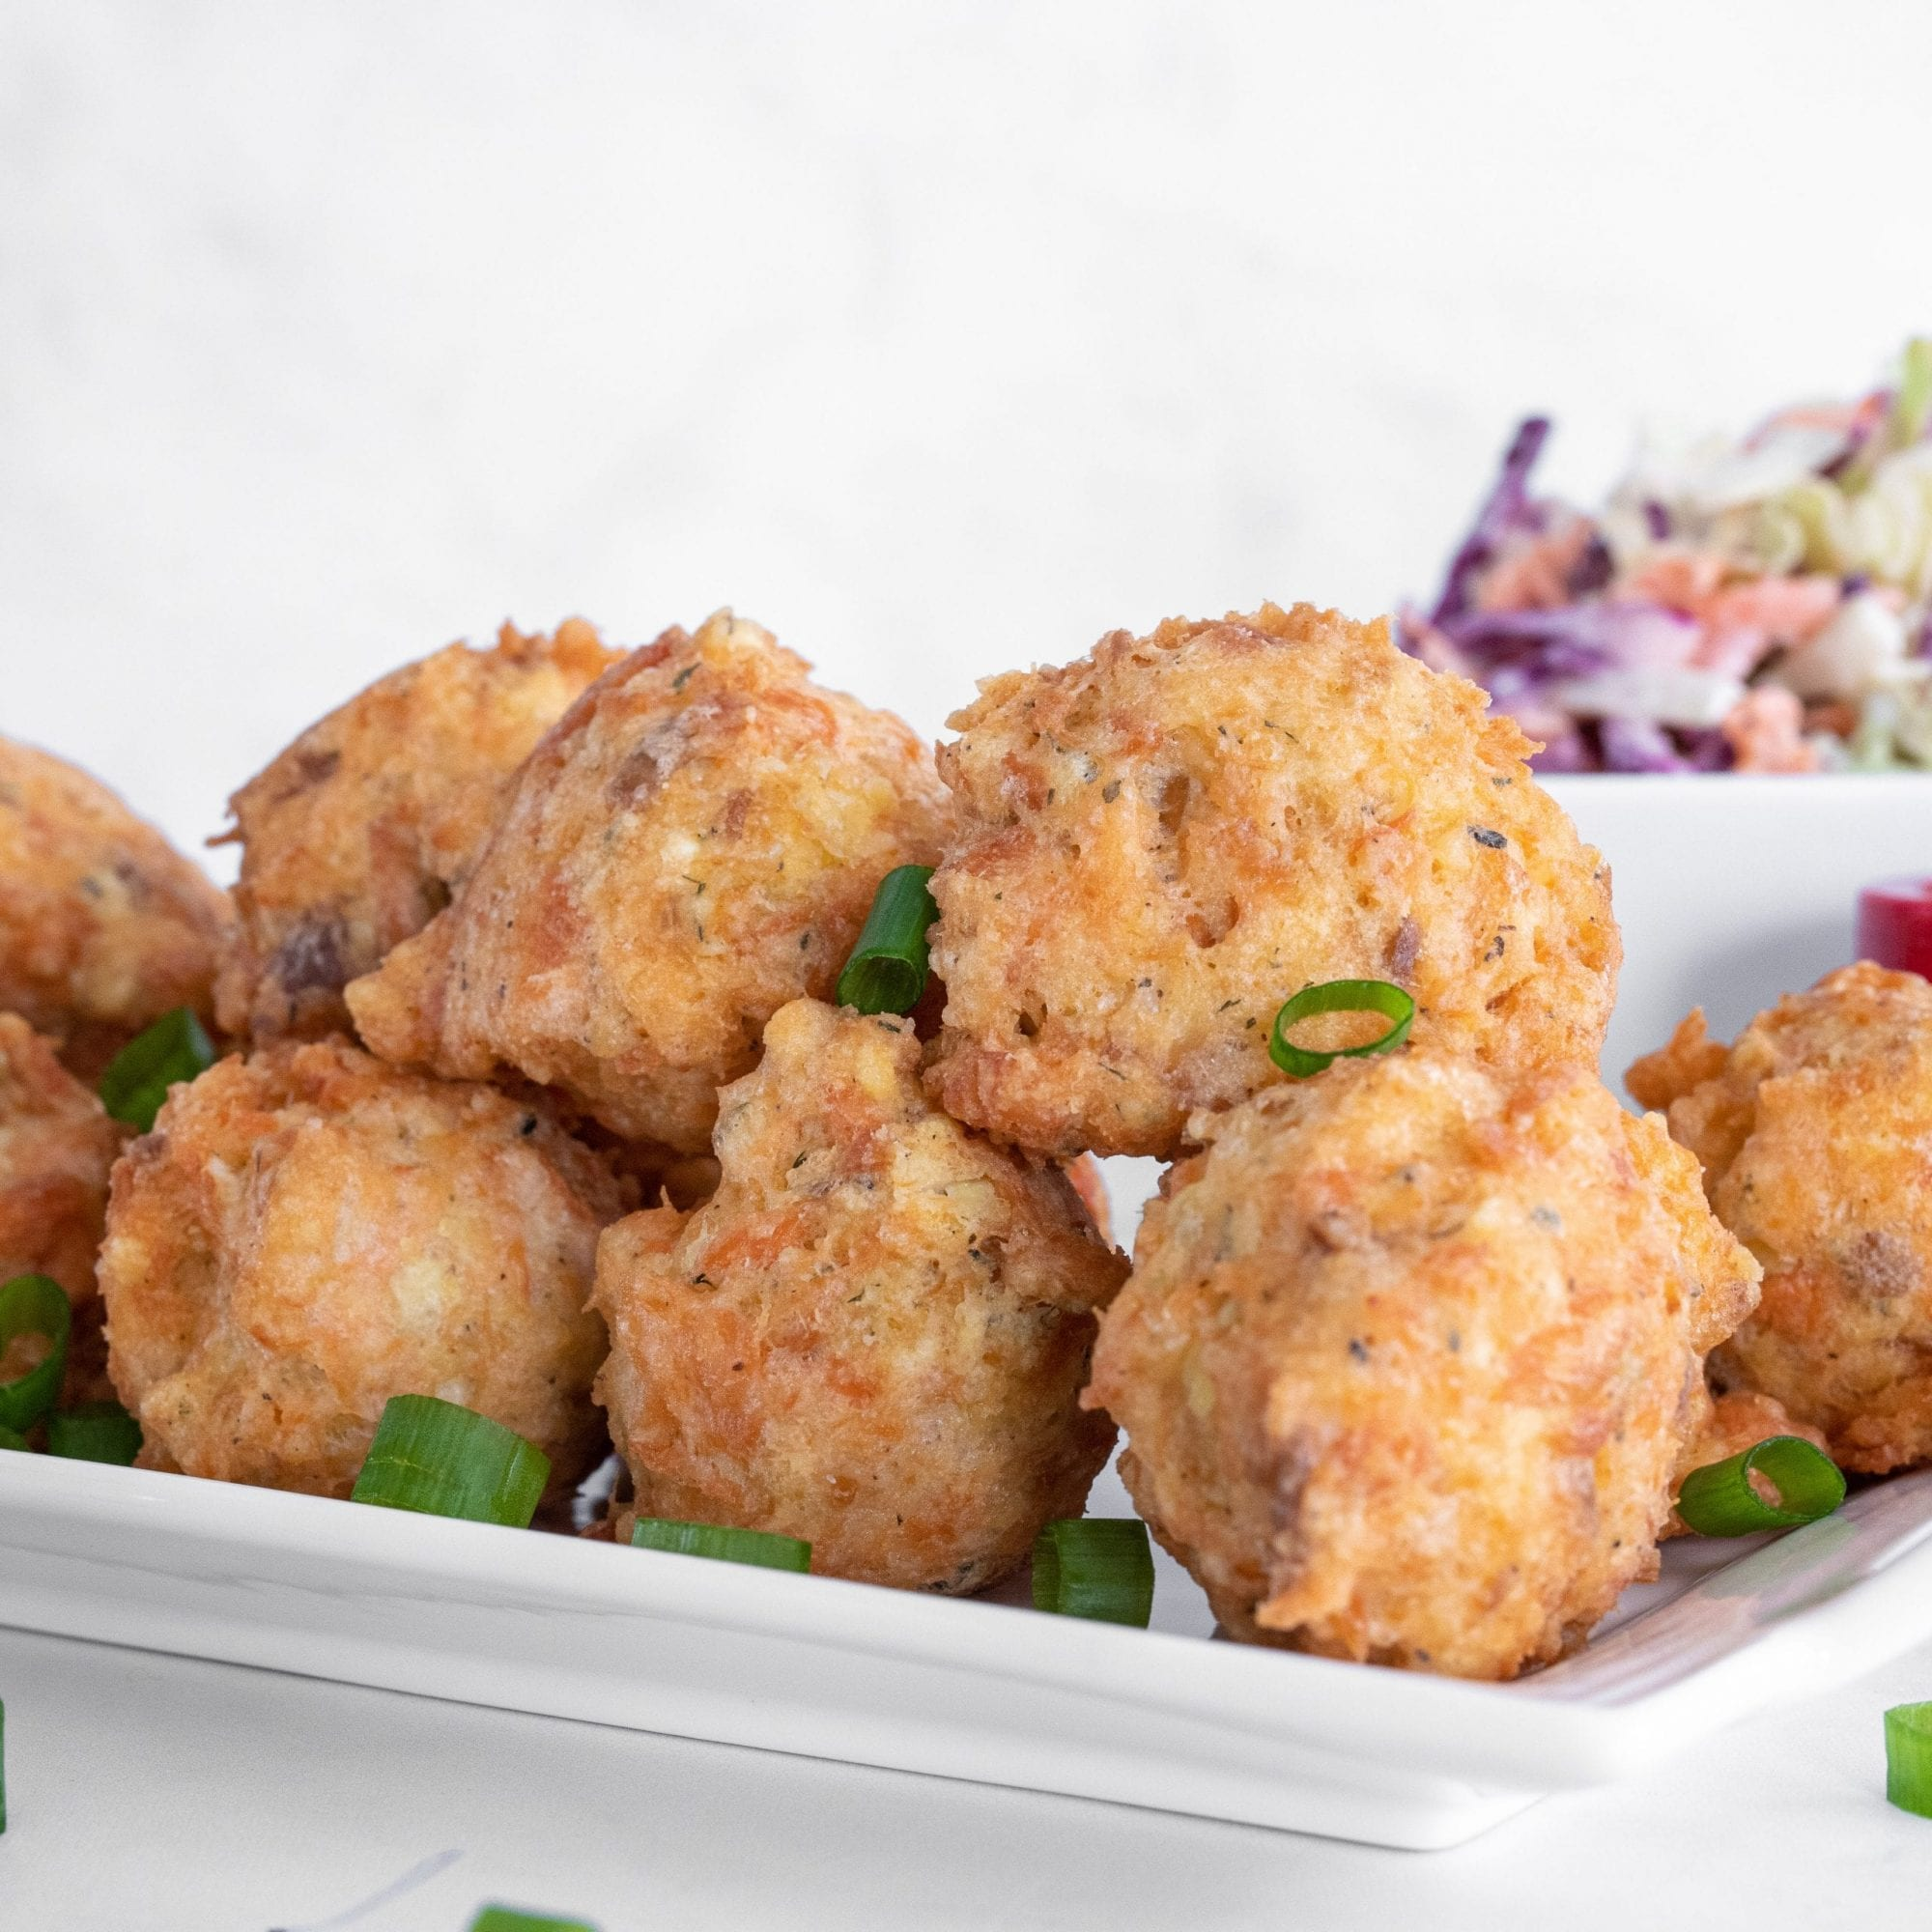 fritters on white tray with coleslaw in the background and tartar sauce. sprinkled with green onions